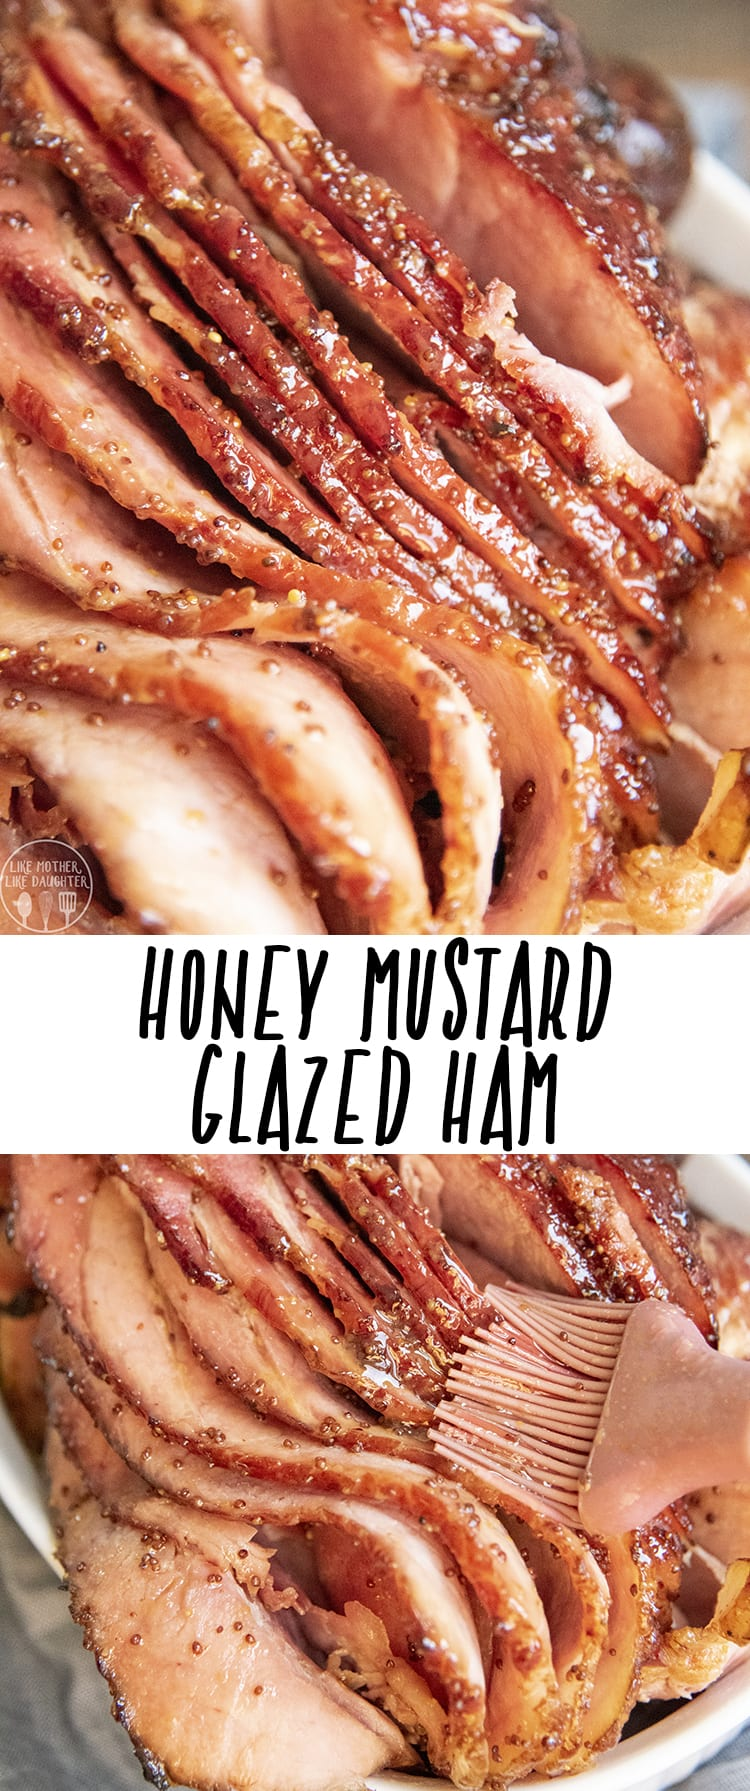 This holiday ham is covered in a perfect honey mustard ham glaze. It's a tender moist ham, with the perfect crispy edges, covered in a tangy, sweet, and salty glaze that everyone will love! #ham #holidayham #Easterham #Christmasham #hamrecipe #holidayrecipes